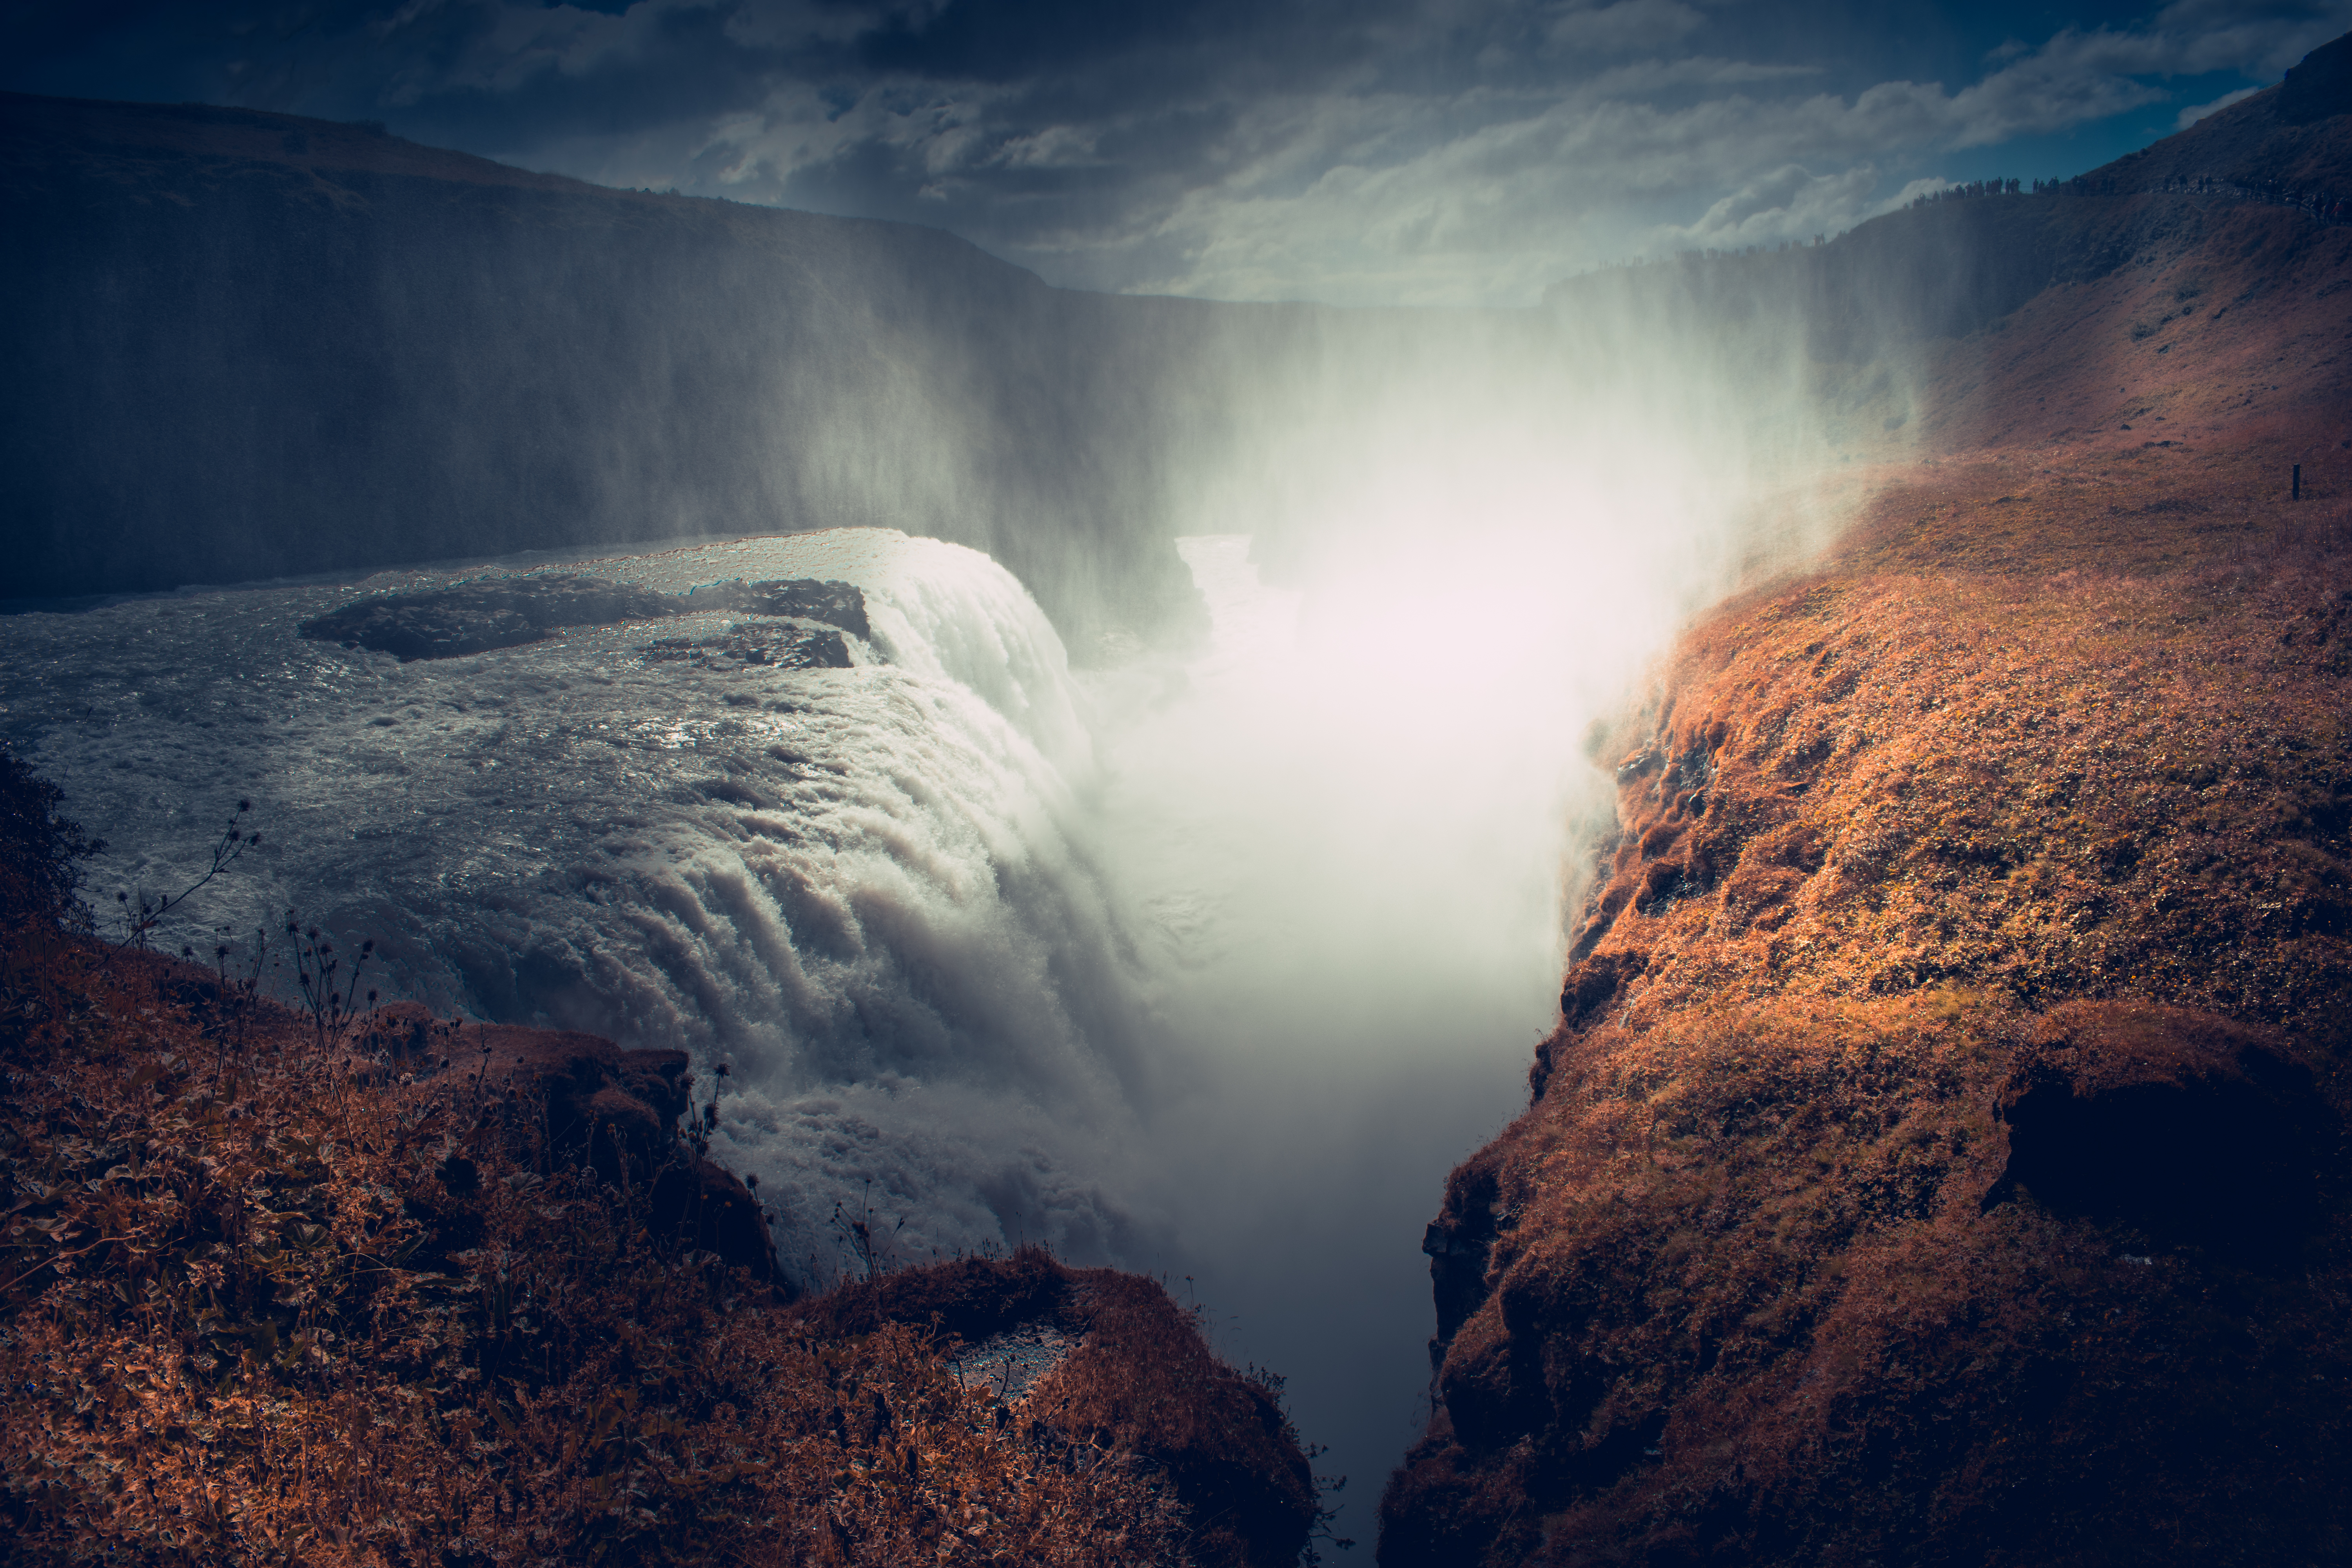 Low light photography of waterfalls